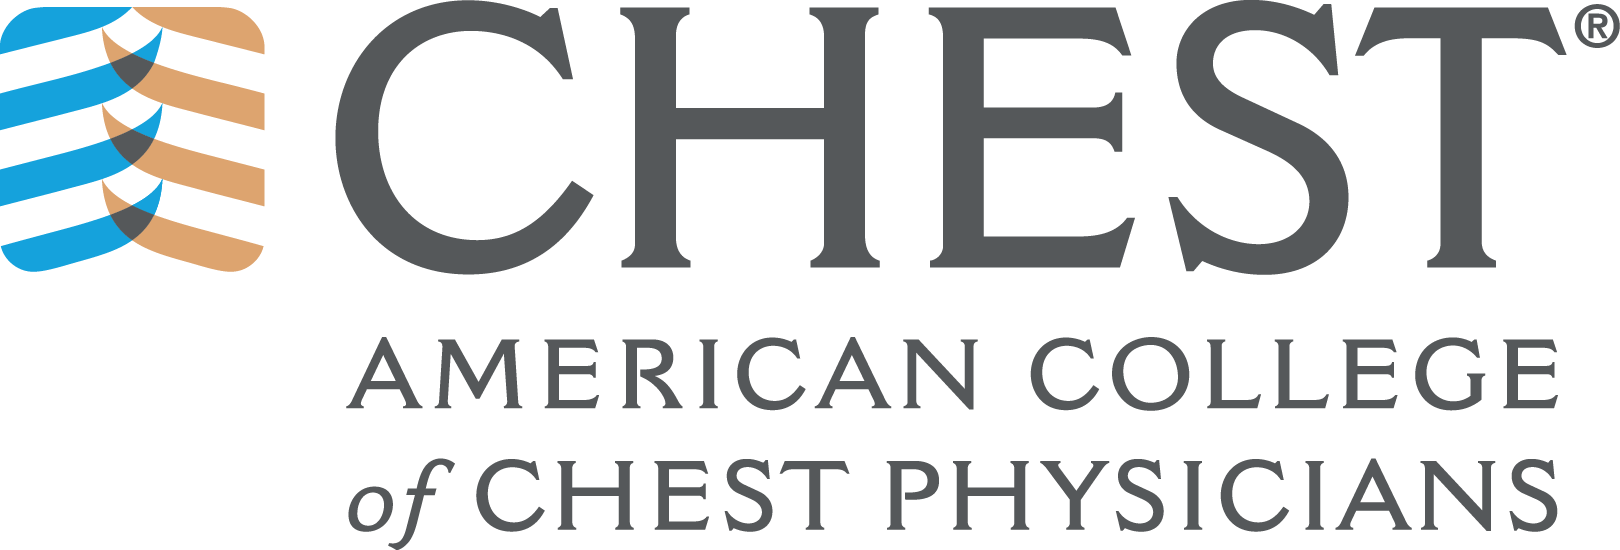 This image is the American College of Chest Physicians  logo.